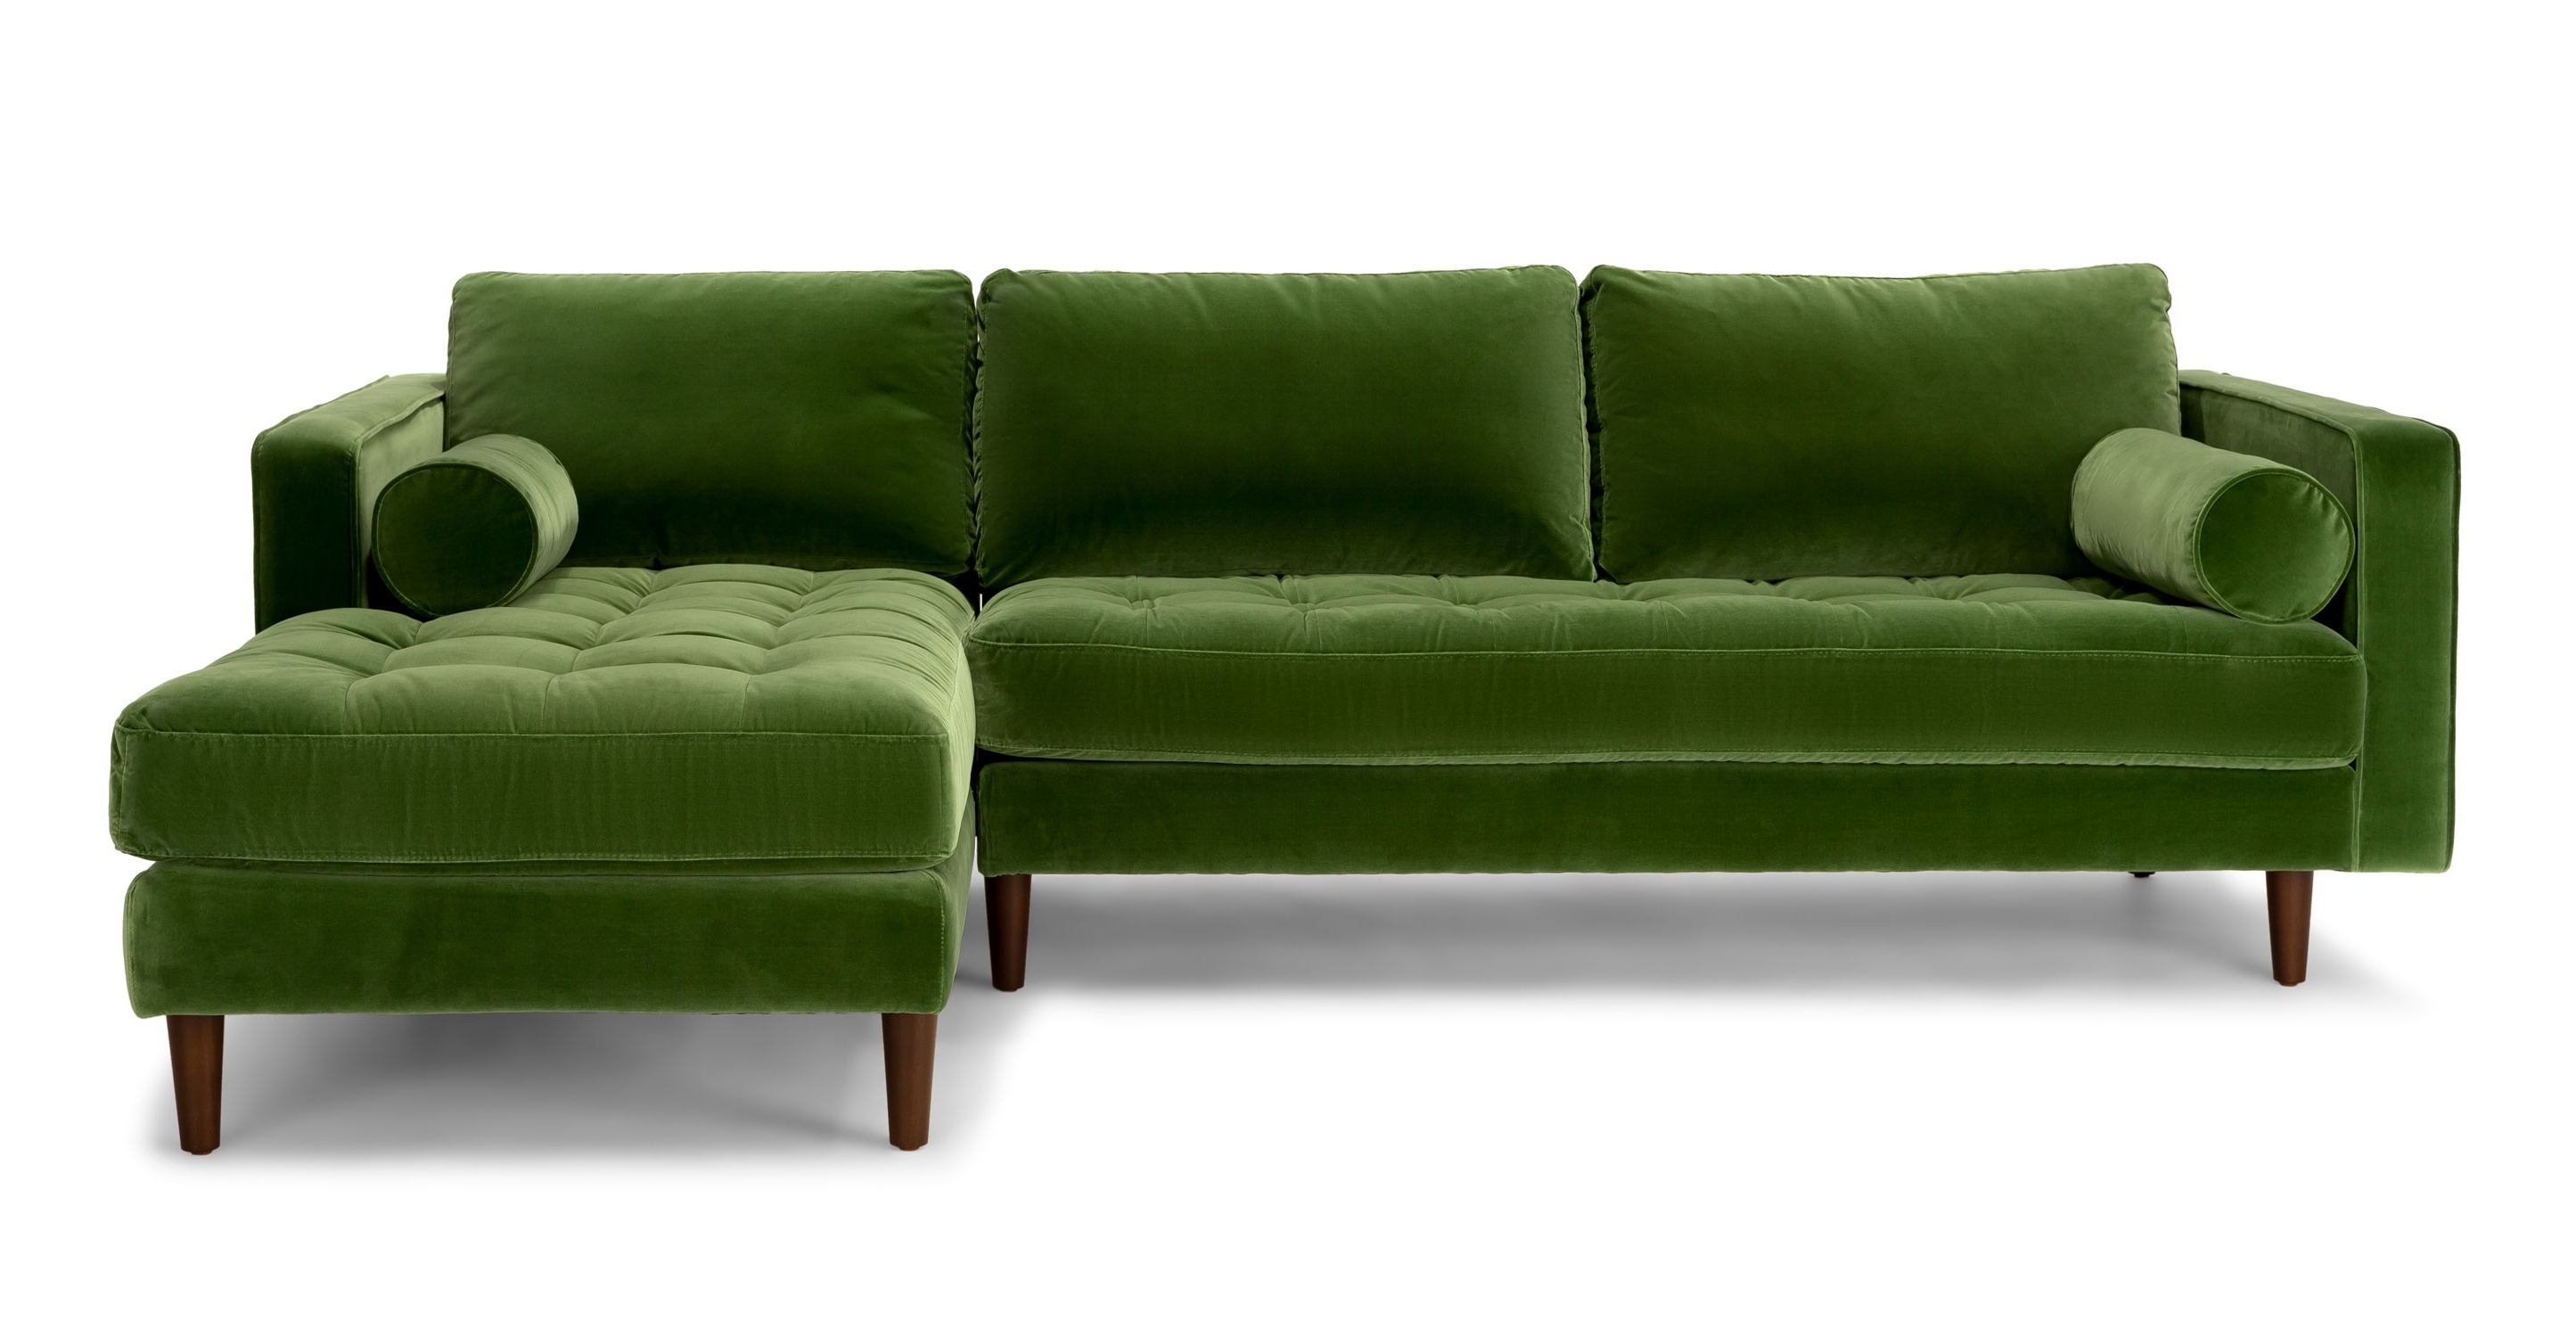 Popular Excellent Sofa On Sale On Green Sectional Sofa Easy As Inside Green Sectional Sofas (View 18 of 20)